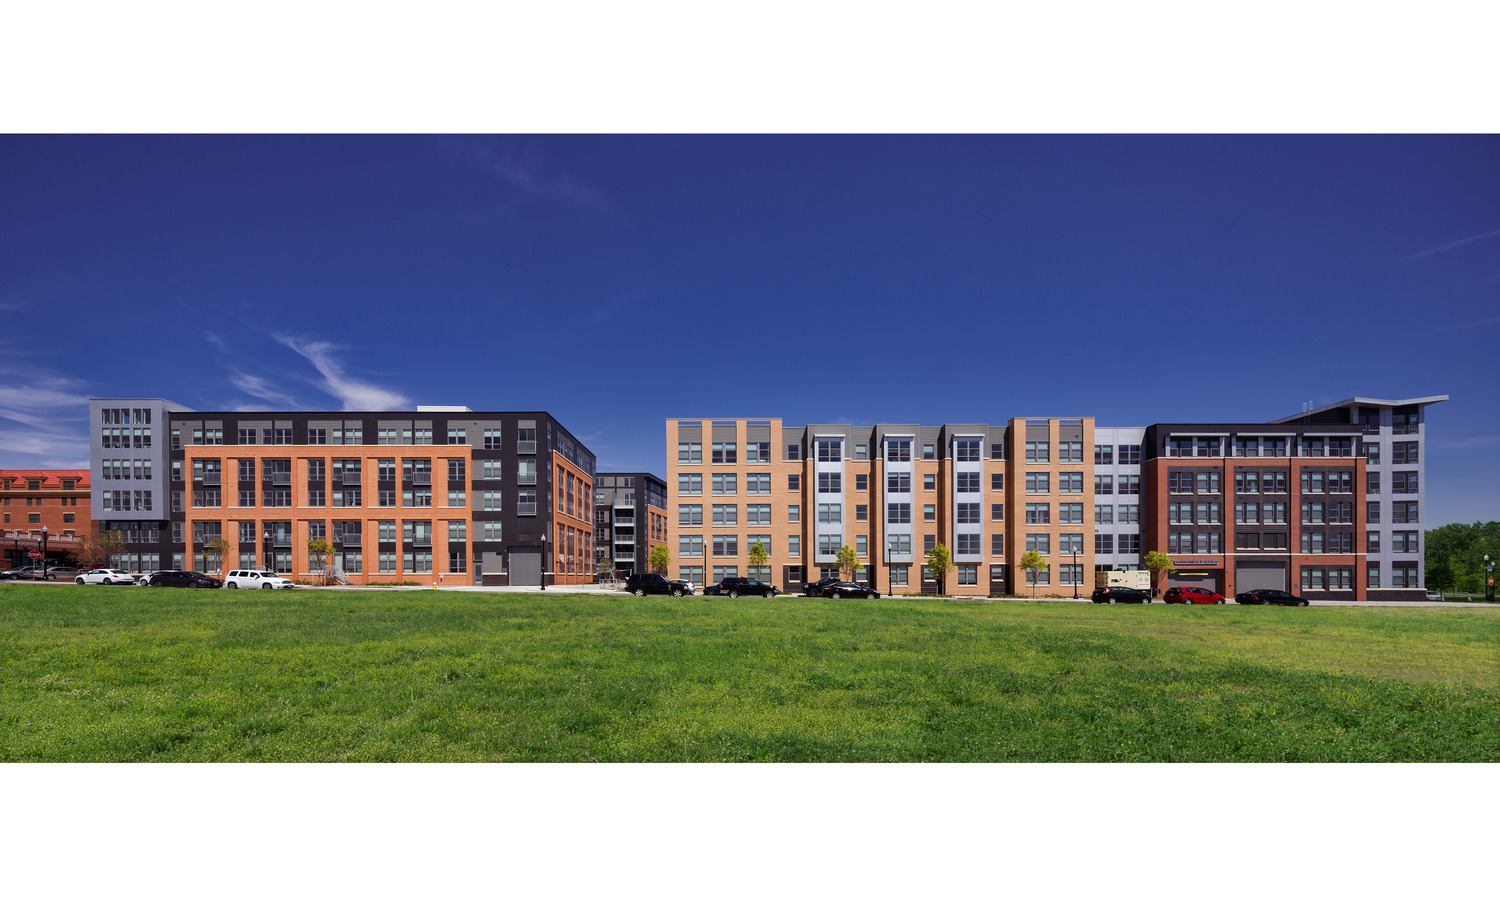 CBG builds Avalon Potomac Yard, a 331-Unit Luxury Apartment Community in Two Buildings Over a Shared Below-Grade Garage in Alexandria, VA - Image #3